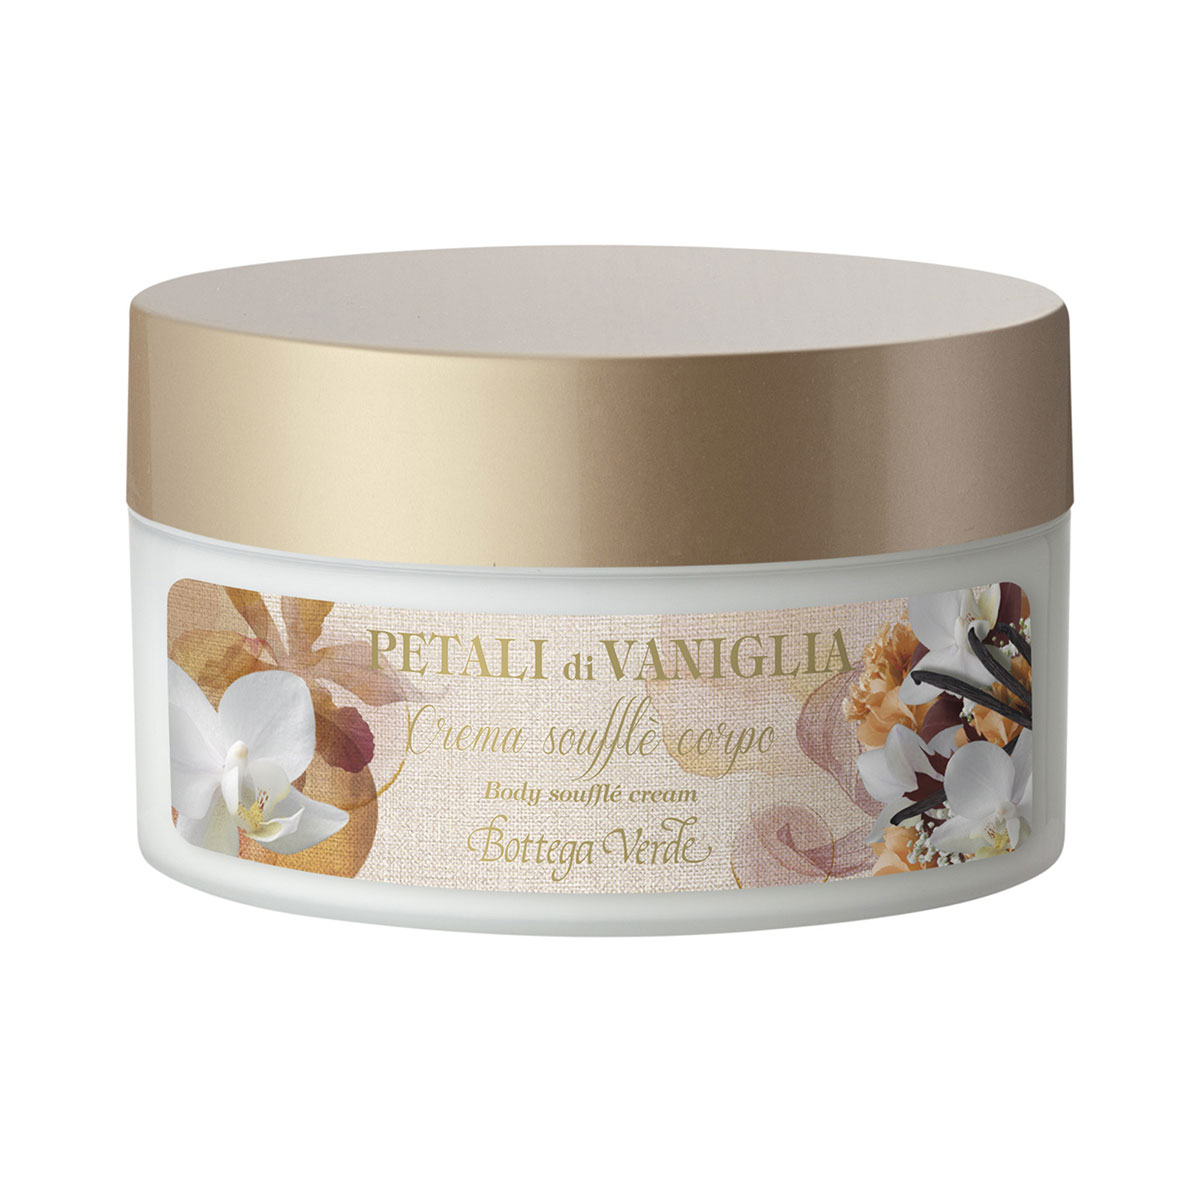 Vanilla petals - Body Soufflé Cream with Vanilla Extract (200 ml)